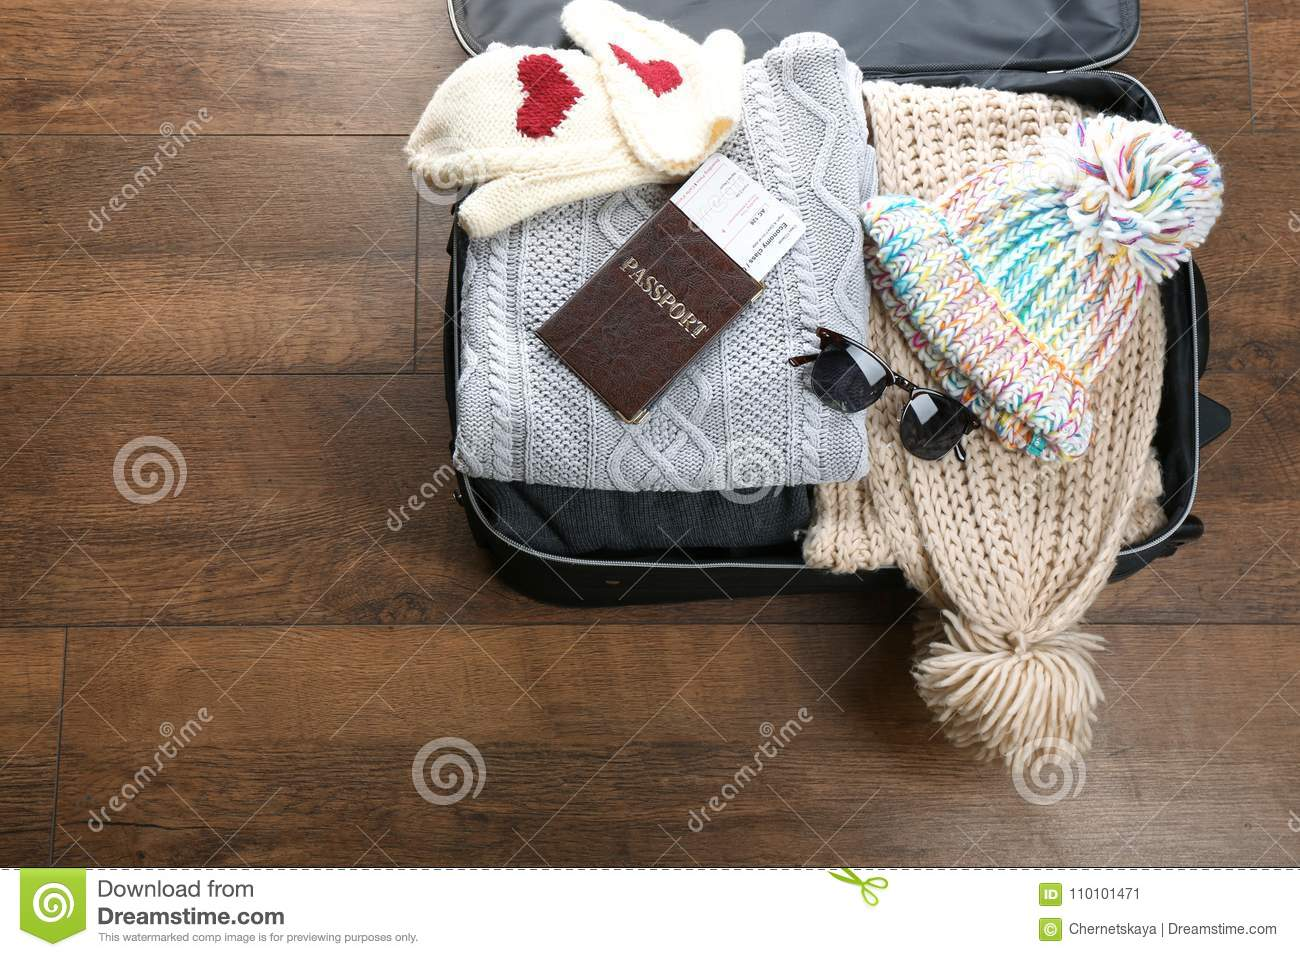 941c8db7093 Open Suitcase With Warm Clothes And Documents Stock Image - Image of ...